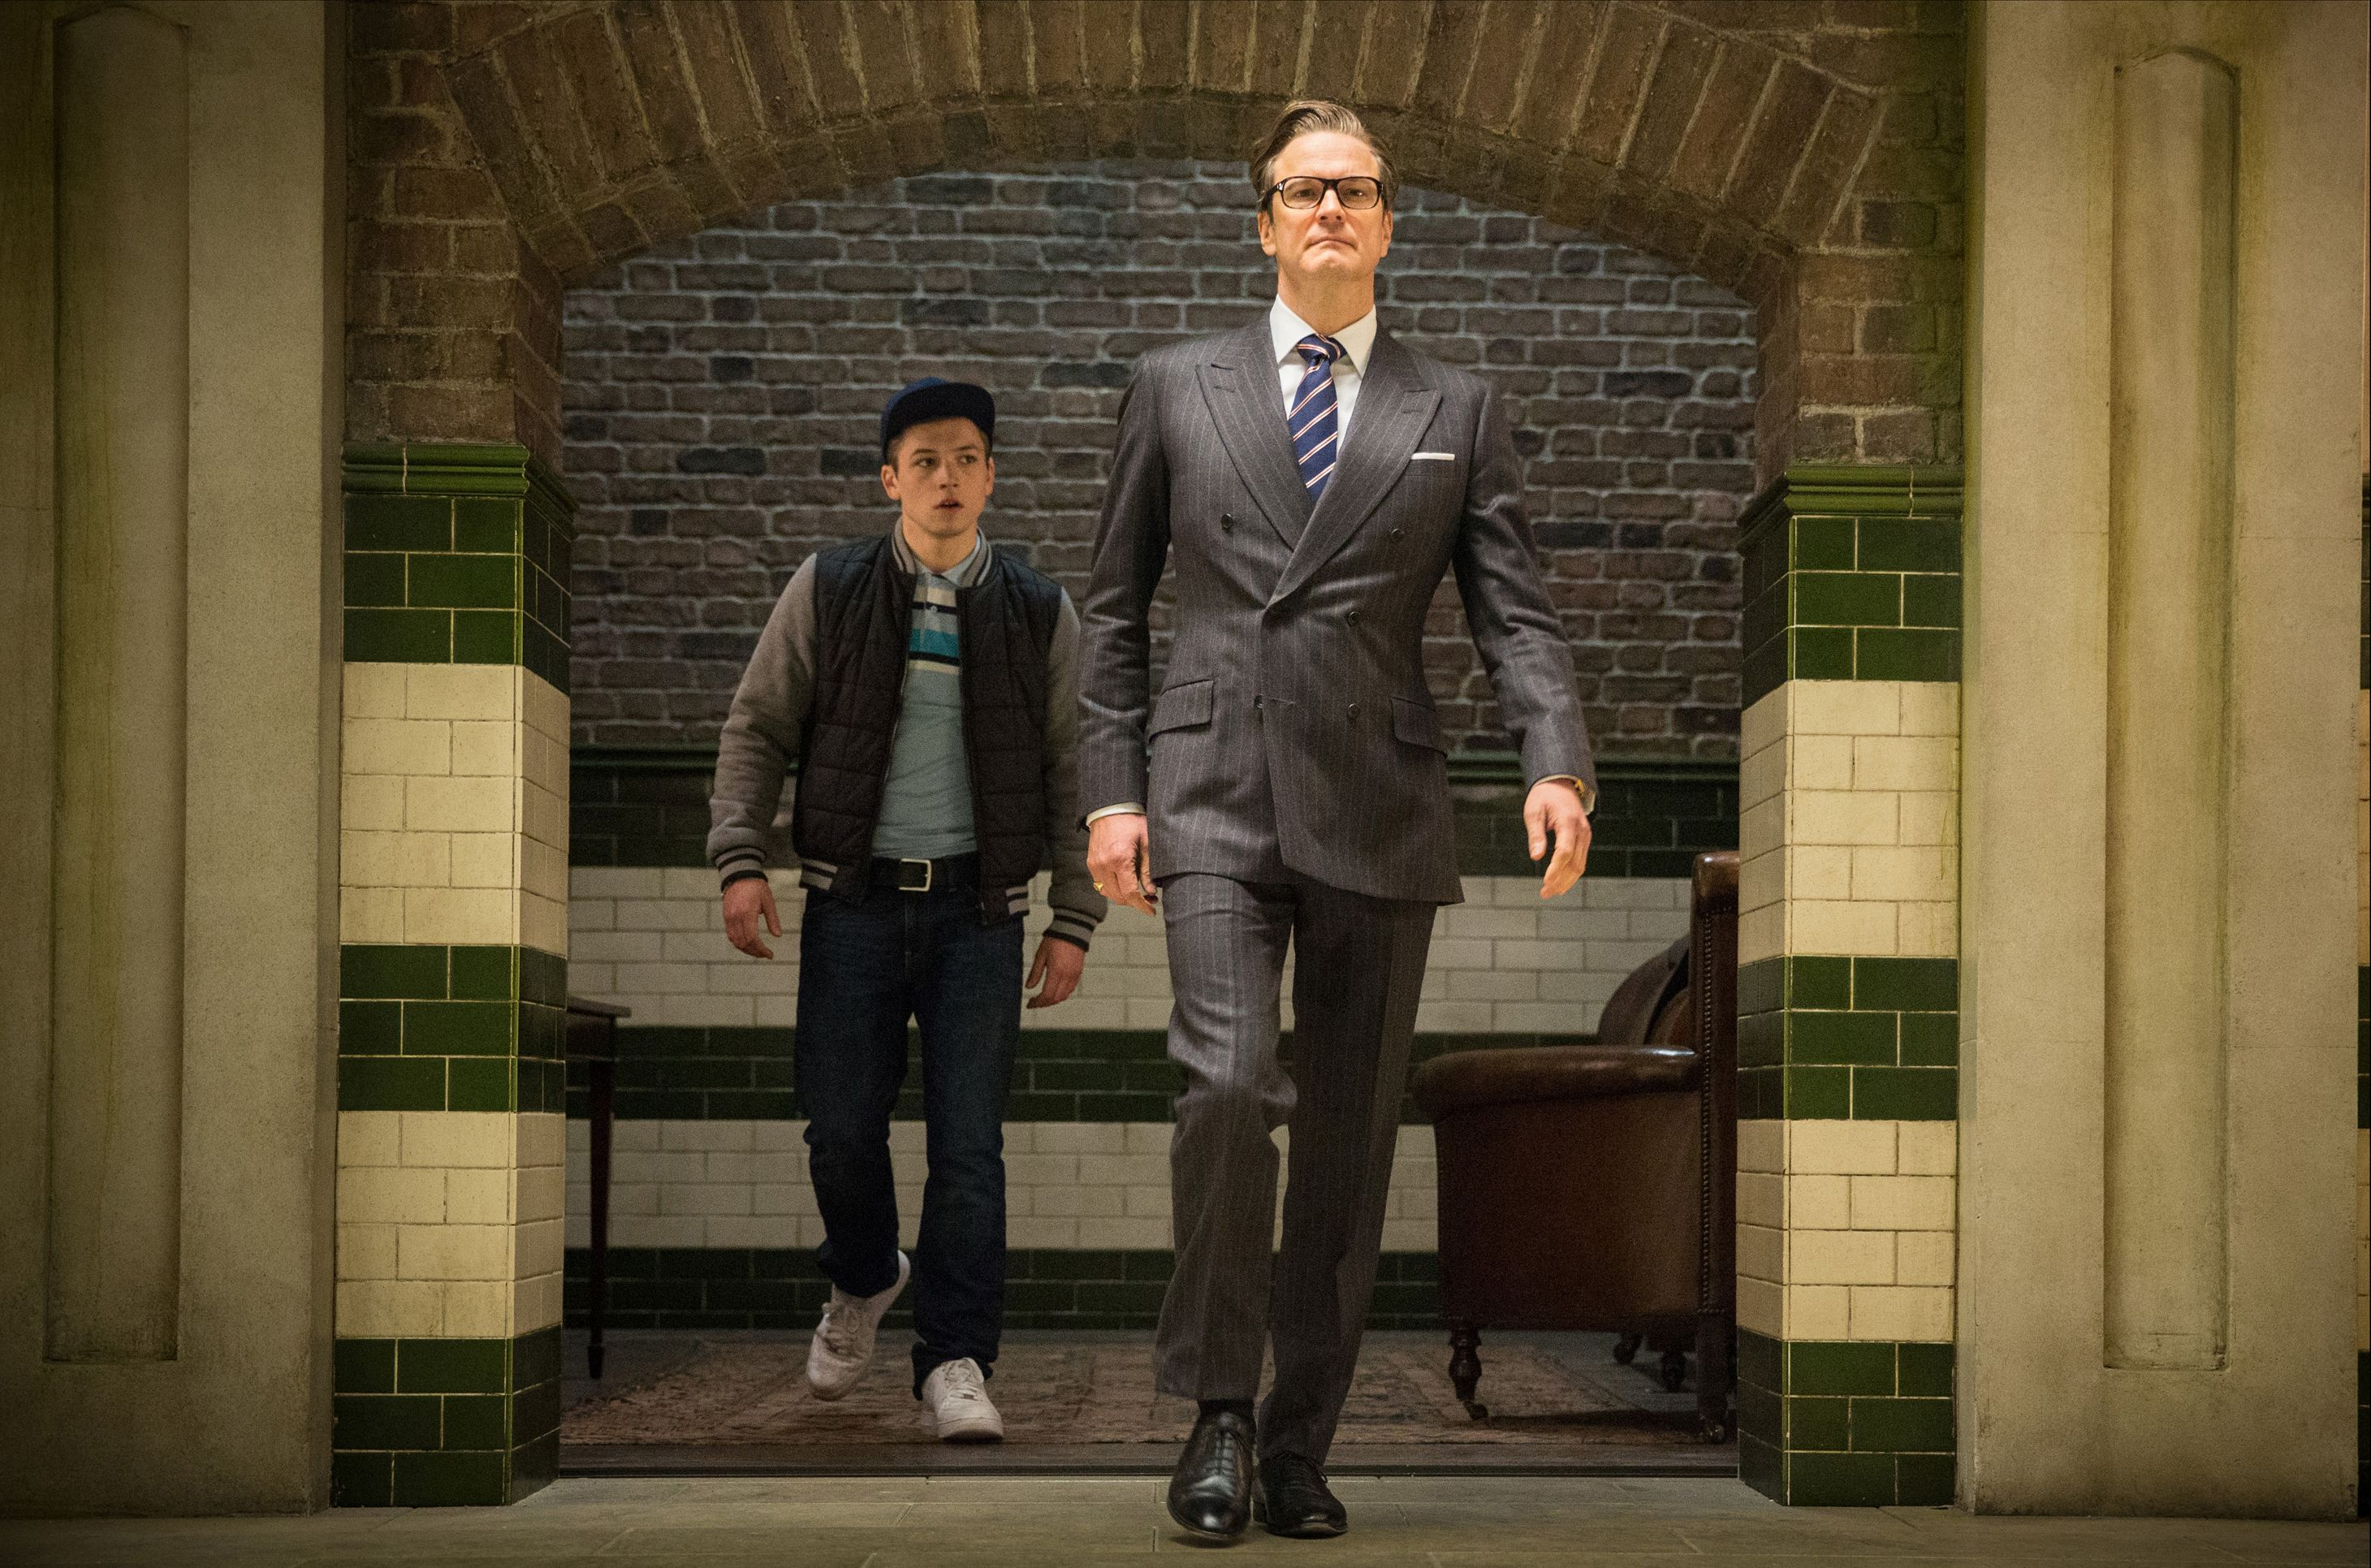 Kingsman The Secret Service Interview Taron Egerton: Kingsman: The Secret Service Sequel May Introduce American